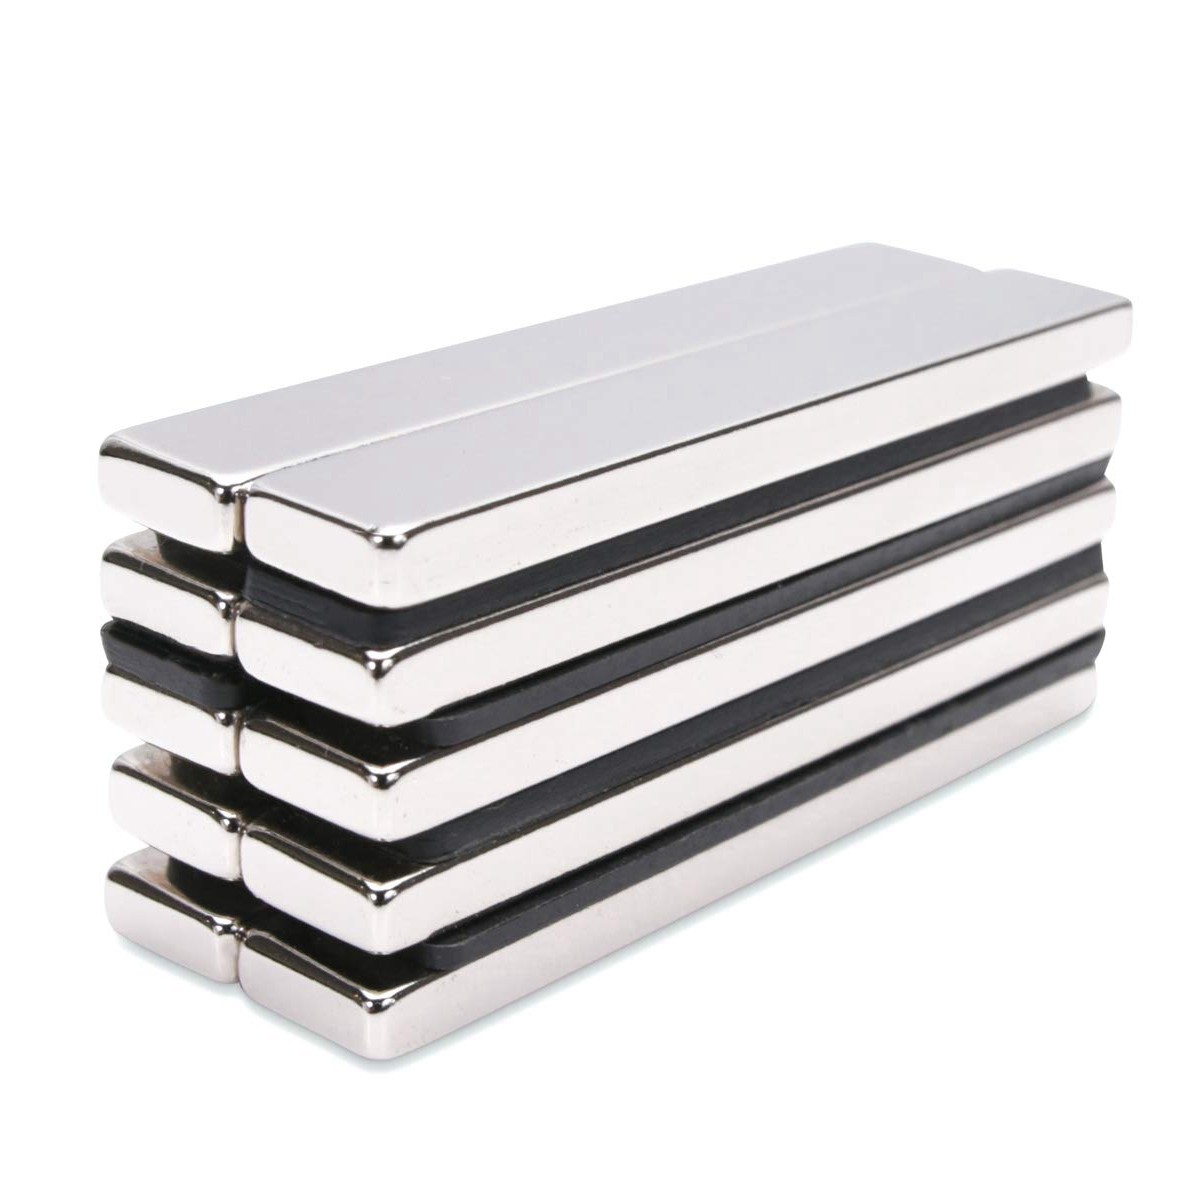 Super Strong Neodymium Bar Magnets Powerful Rare Earth Magnet Bars Strong Anti-Rust Magnets For Fridge Classroom Office HanginSuper Strong Neodymium Bar Magnets Powerful Rare Earth Magnet Bars Strong Anti-Rust Magnets For Fridge Classroom Office Hangin